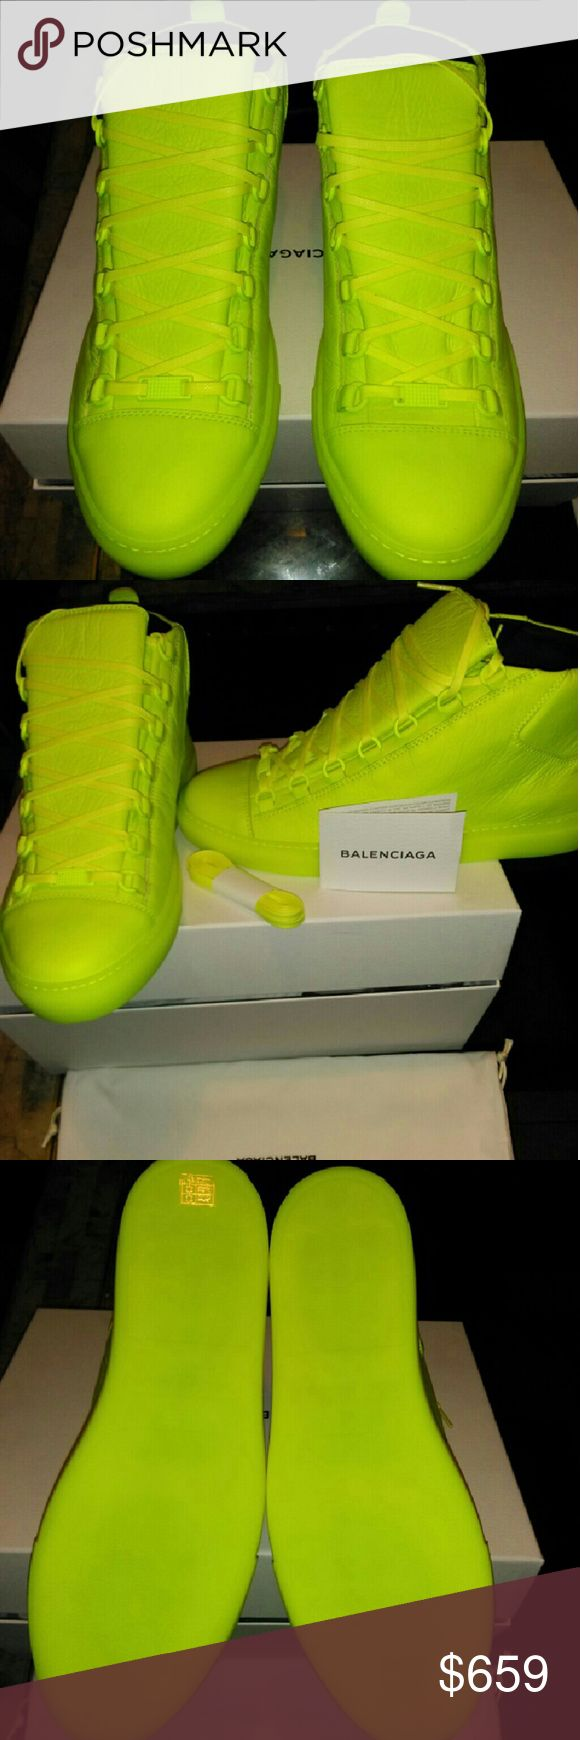 Men Neon Yellow Hip Top Balenciaga Sneakers 41EU Men Balenciaga High Top Arena Sneakers  Several sizes available.   100% Authentic Brand New with Dust Bag and Box   #balenciaga #balenciagasneakers #balenciagaracerunner #balenciaganewseason #balenciagaauthentic #balenciagahightop #balenciagamensneakers #balenciagawhitesneakers Balenciaga  Shoes Sneakers